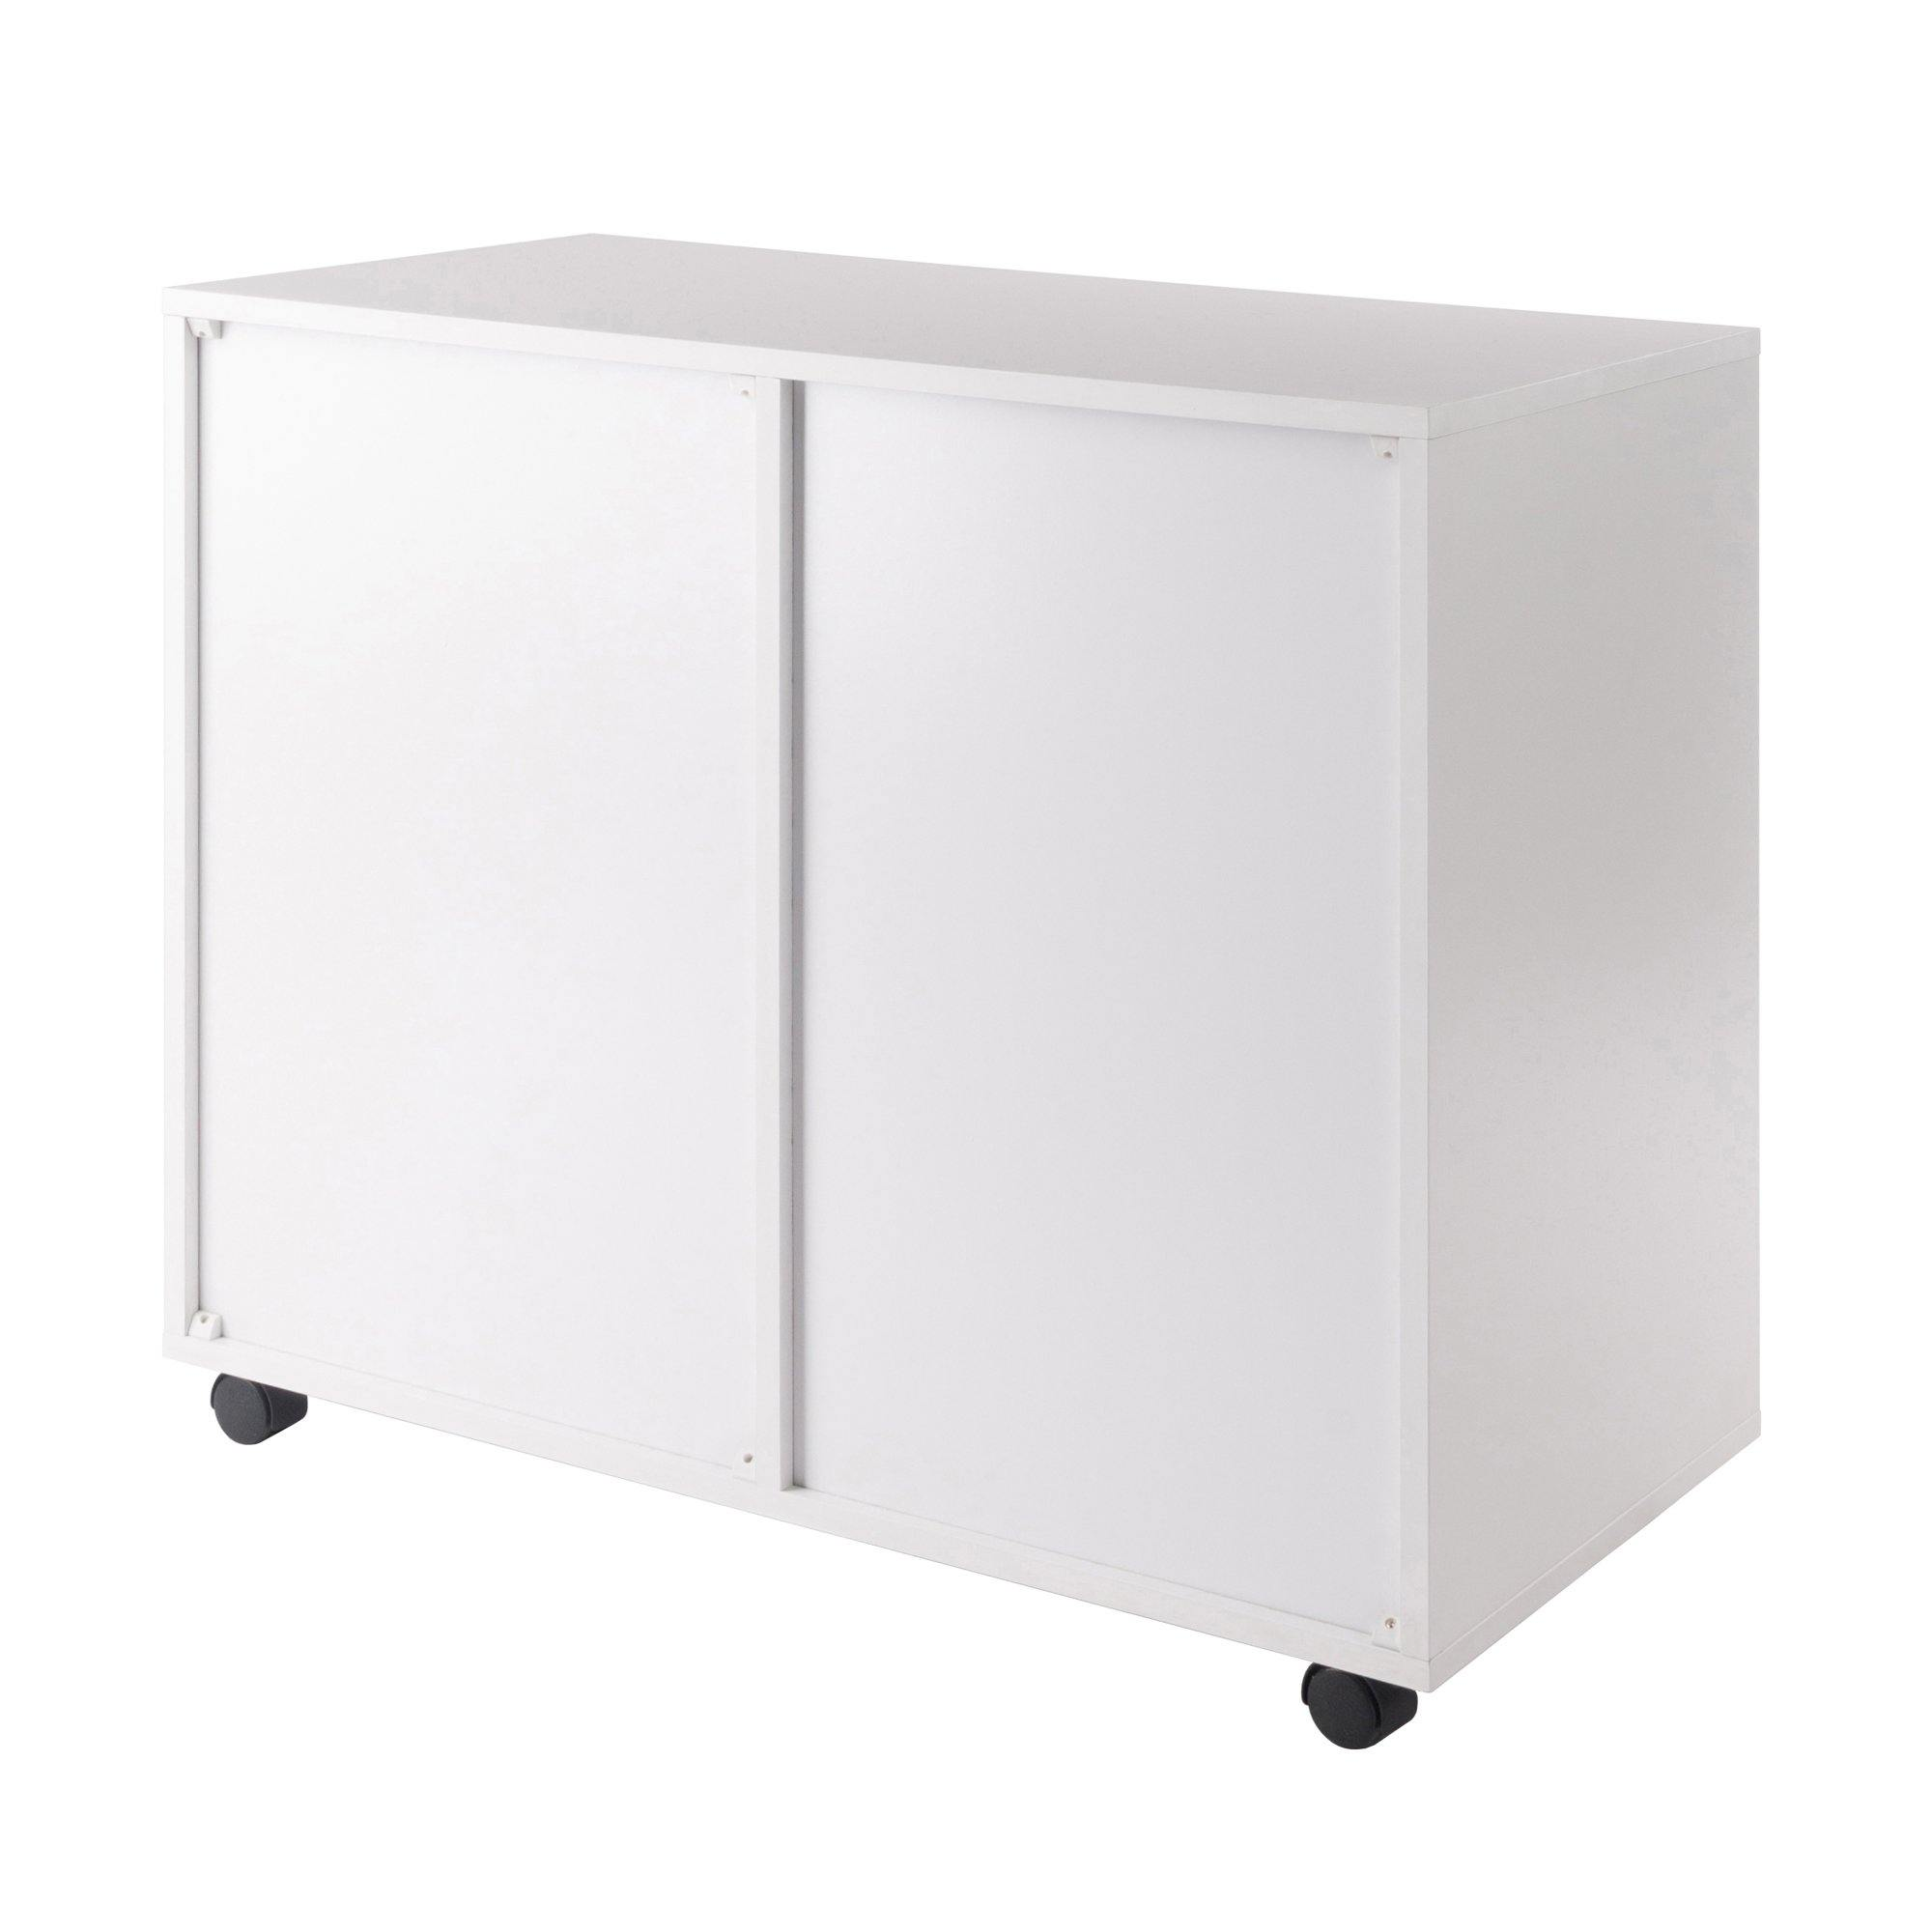 2 Section Mobile Filing Cabinet in White Finish